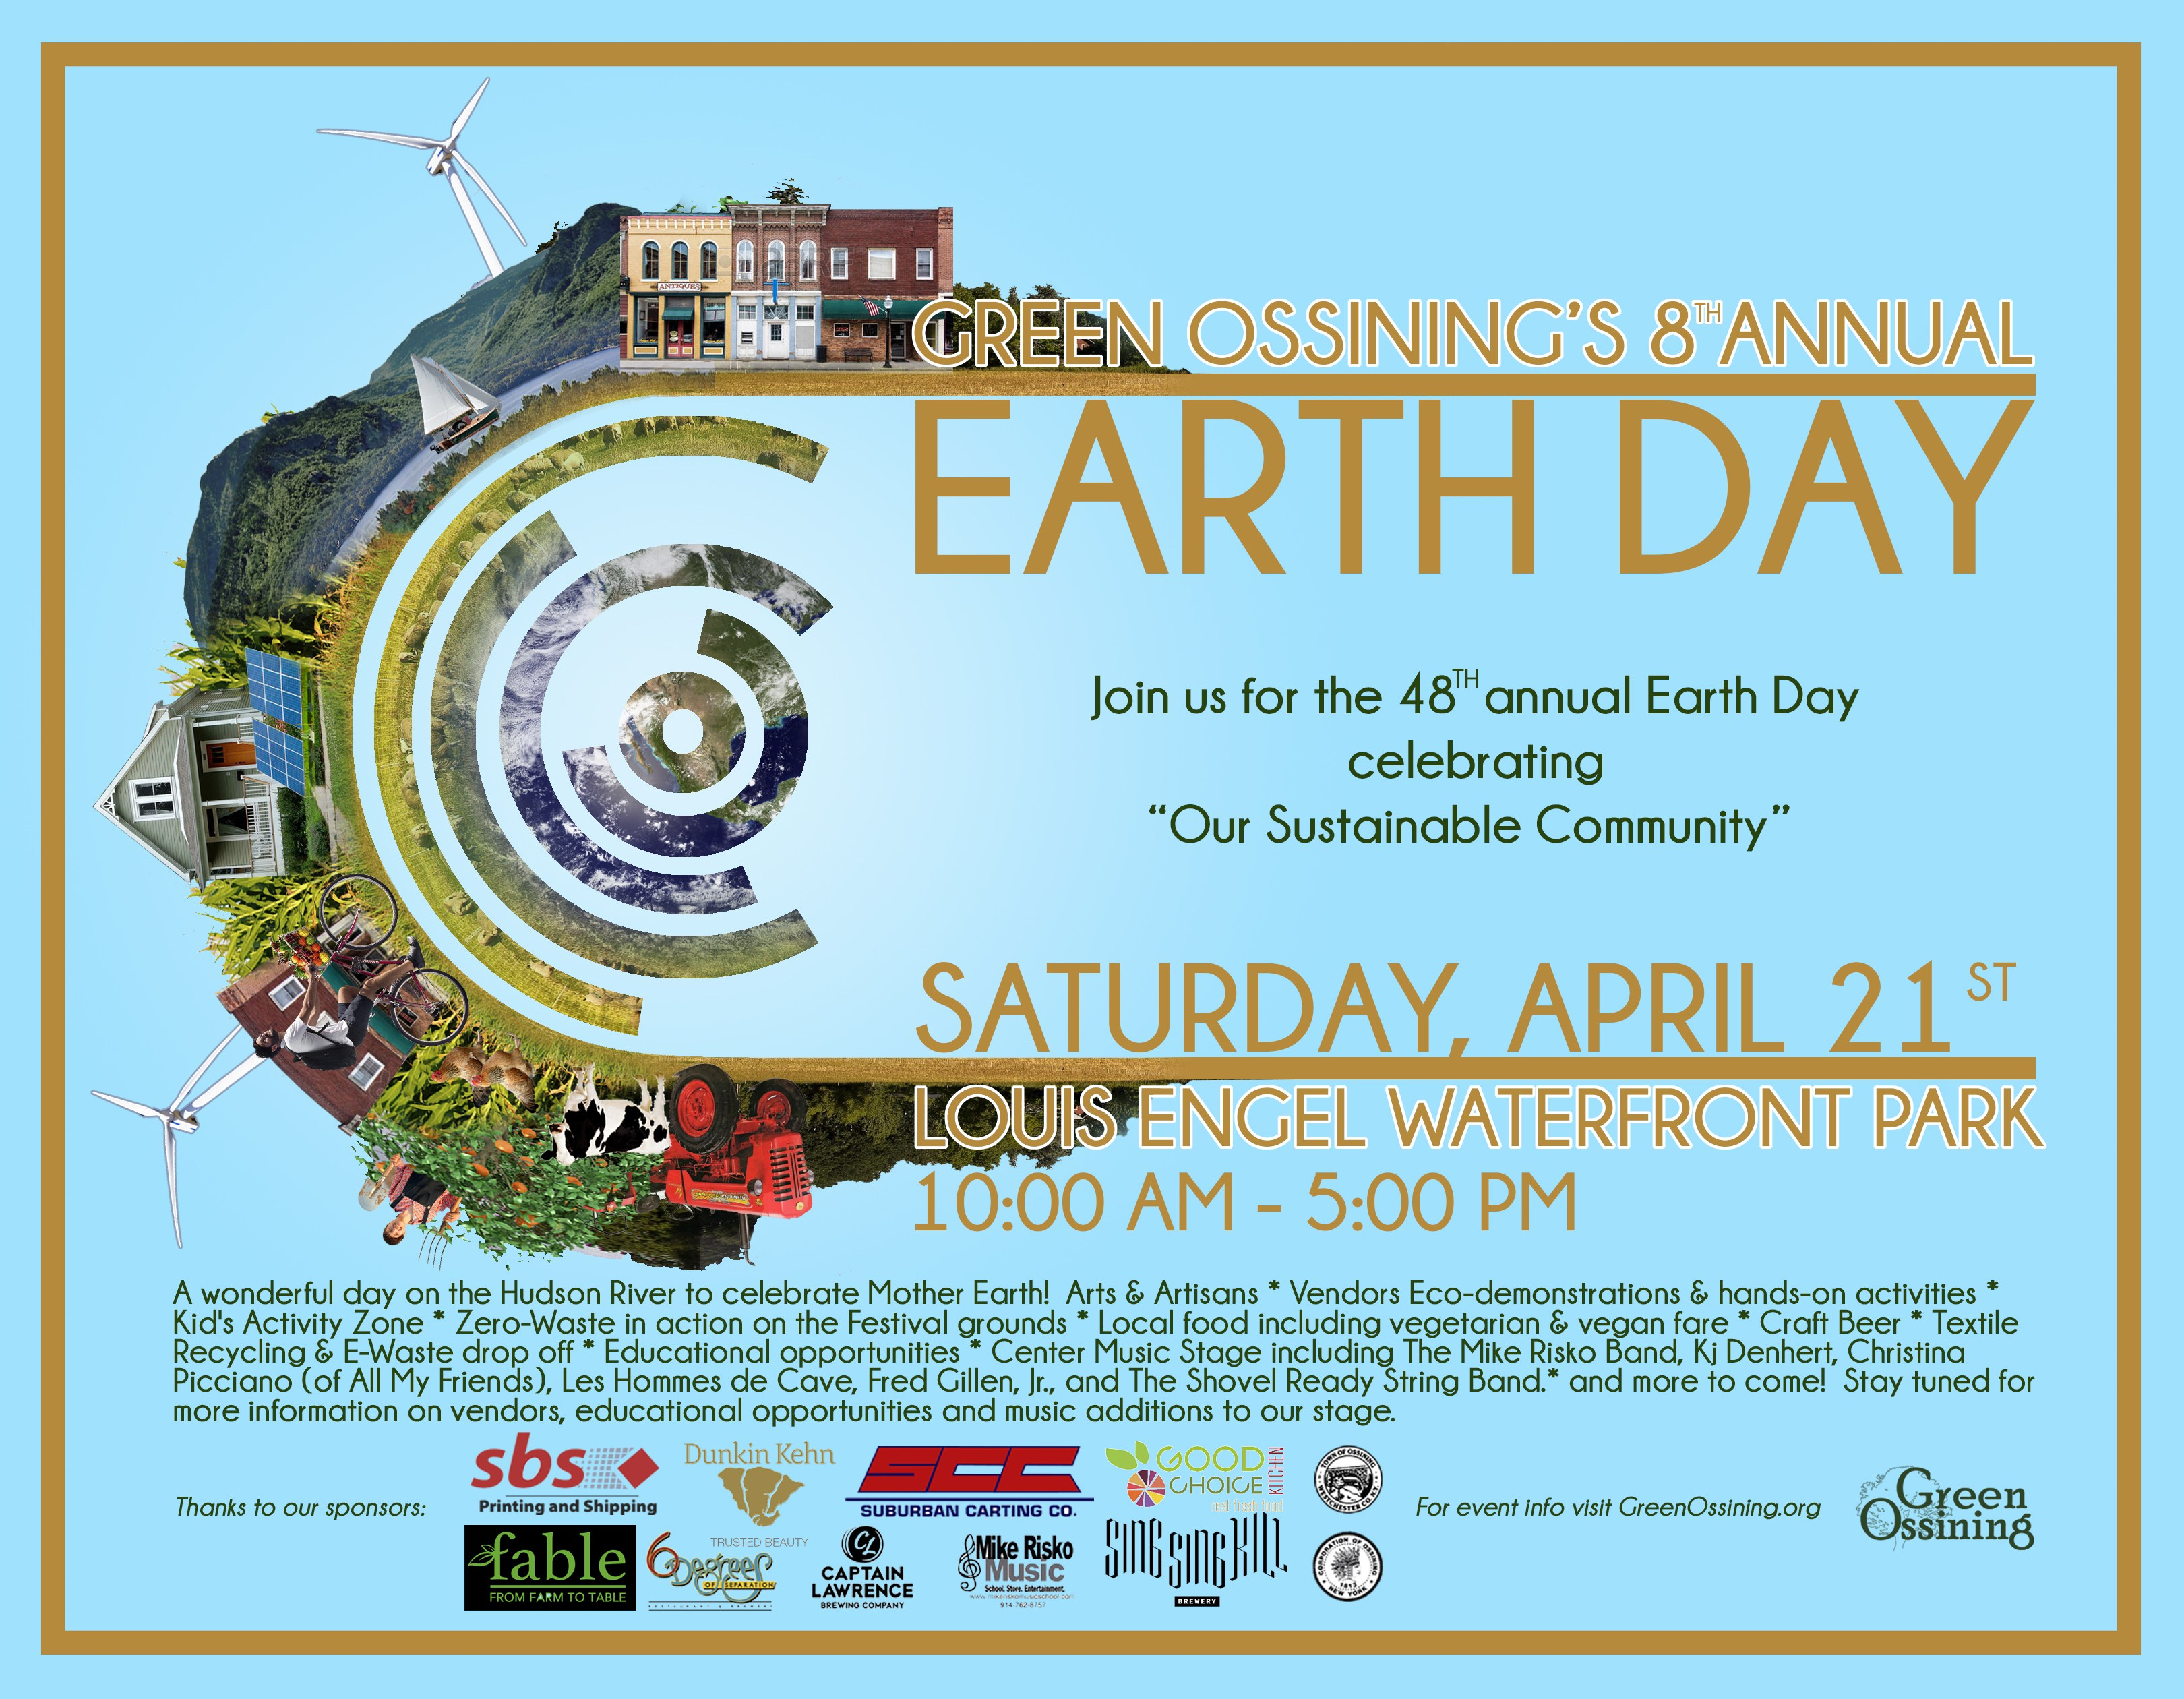 Green Ossining's 8th Annual Earth Day Festival